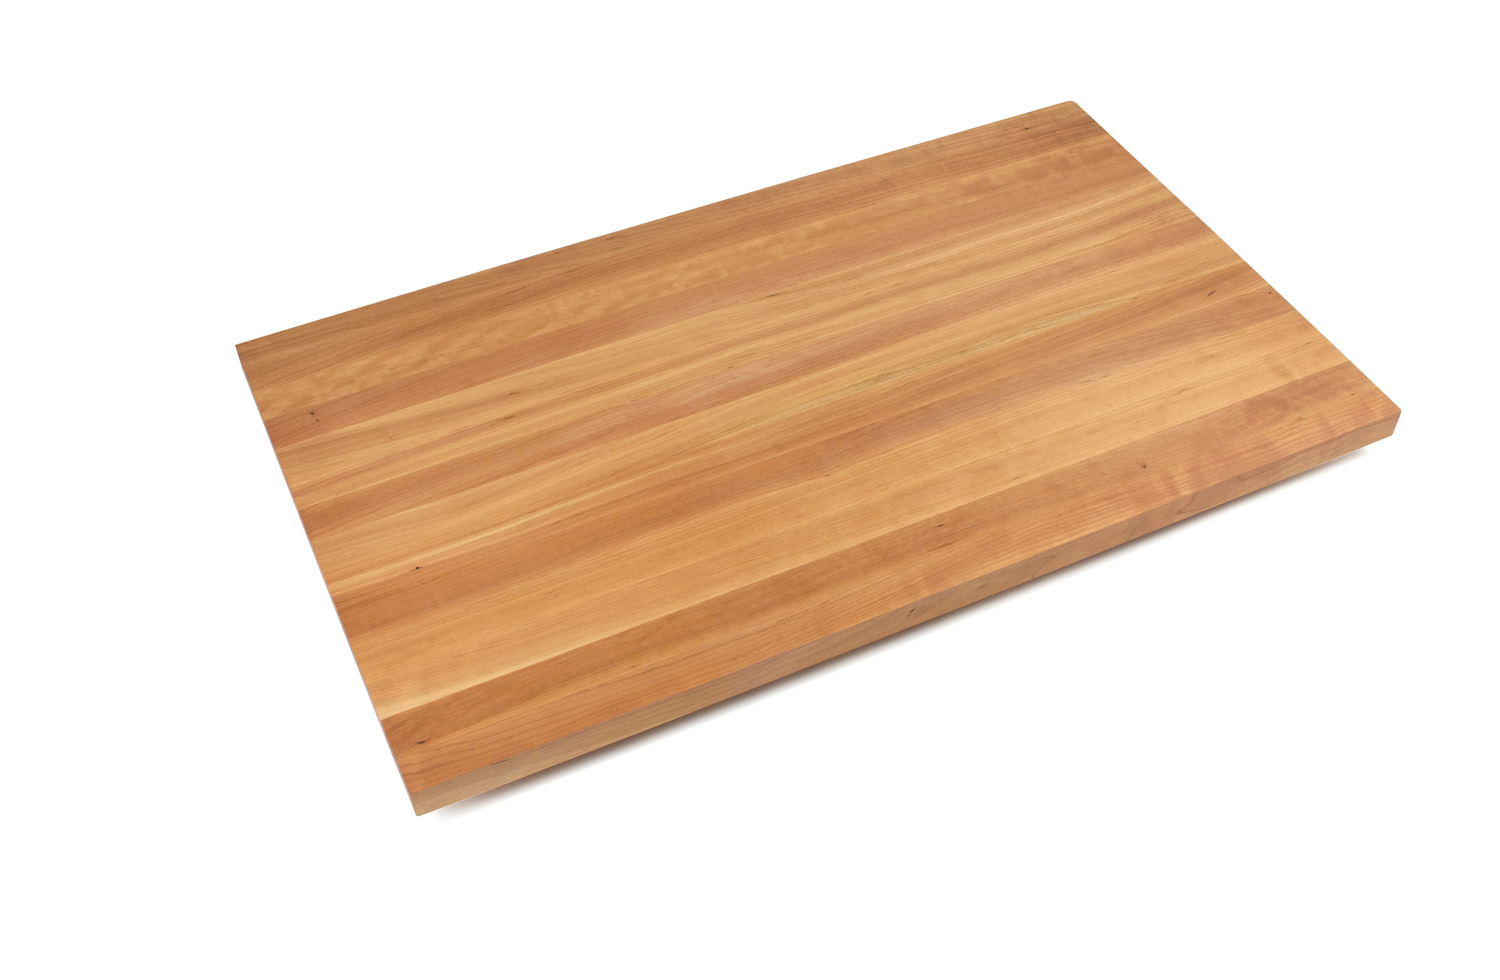 2.25 inch thick edge grain cherry butcher block counters 32 inches wide